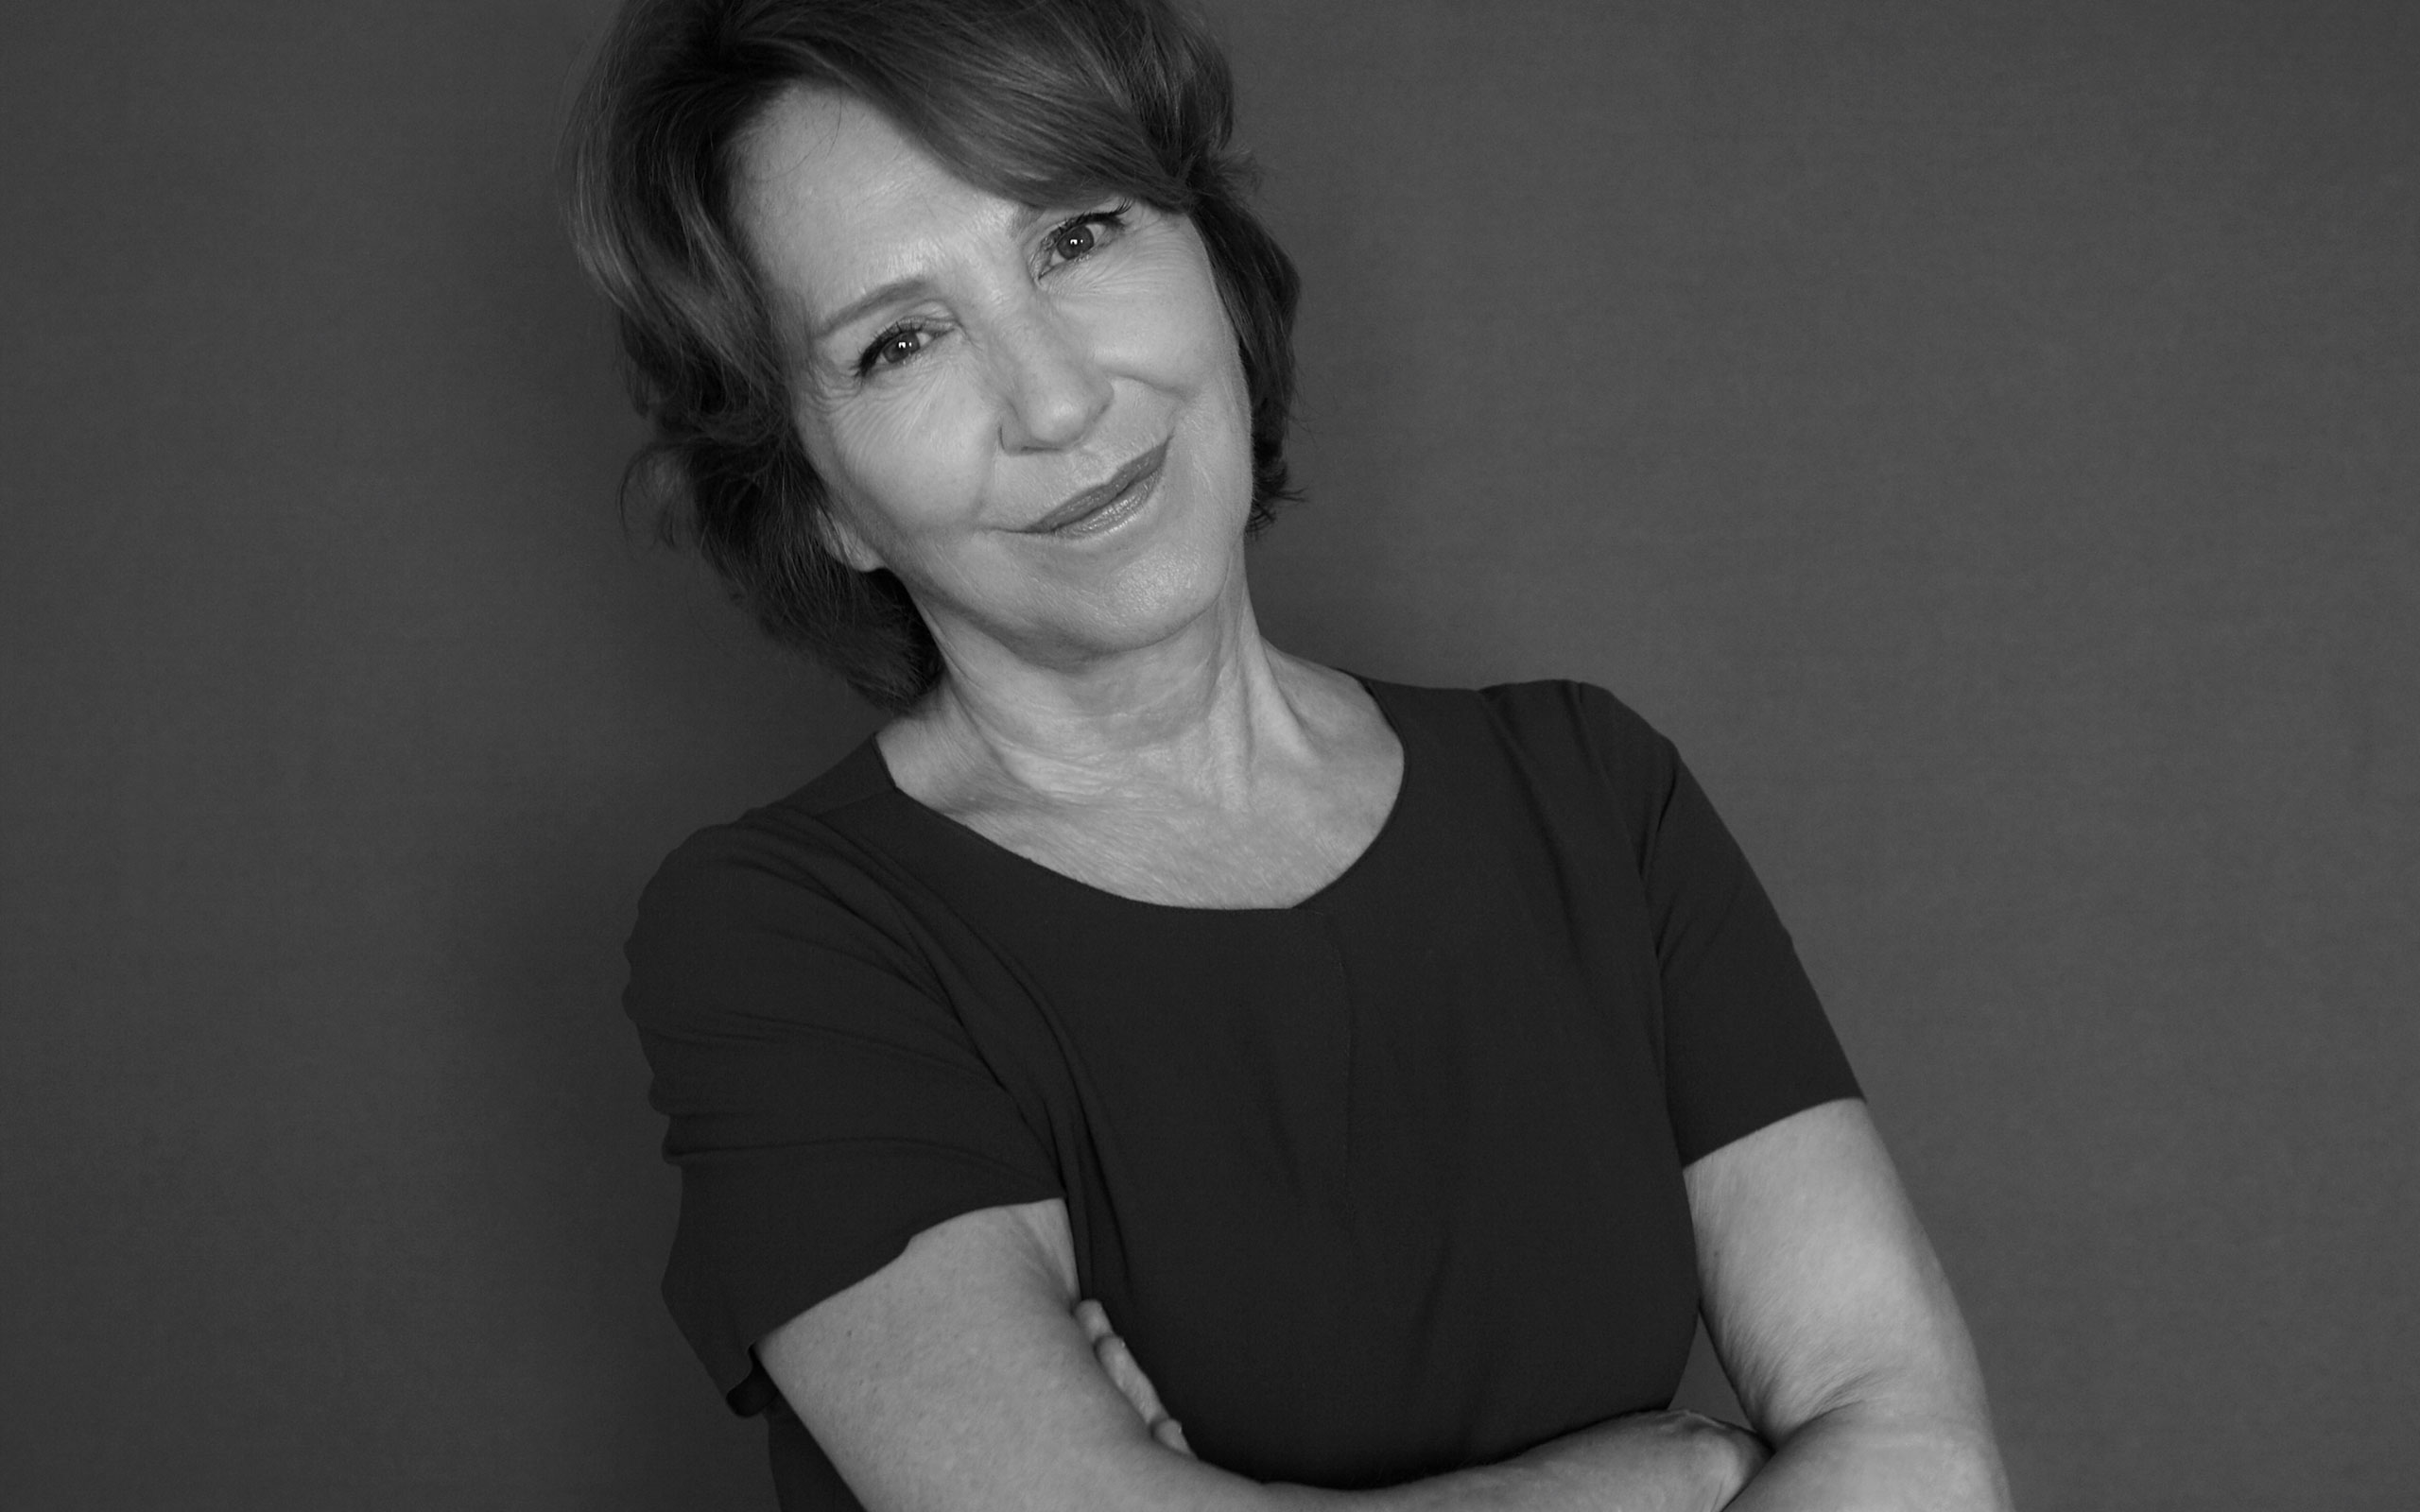 Interview With Nathalie Baye